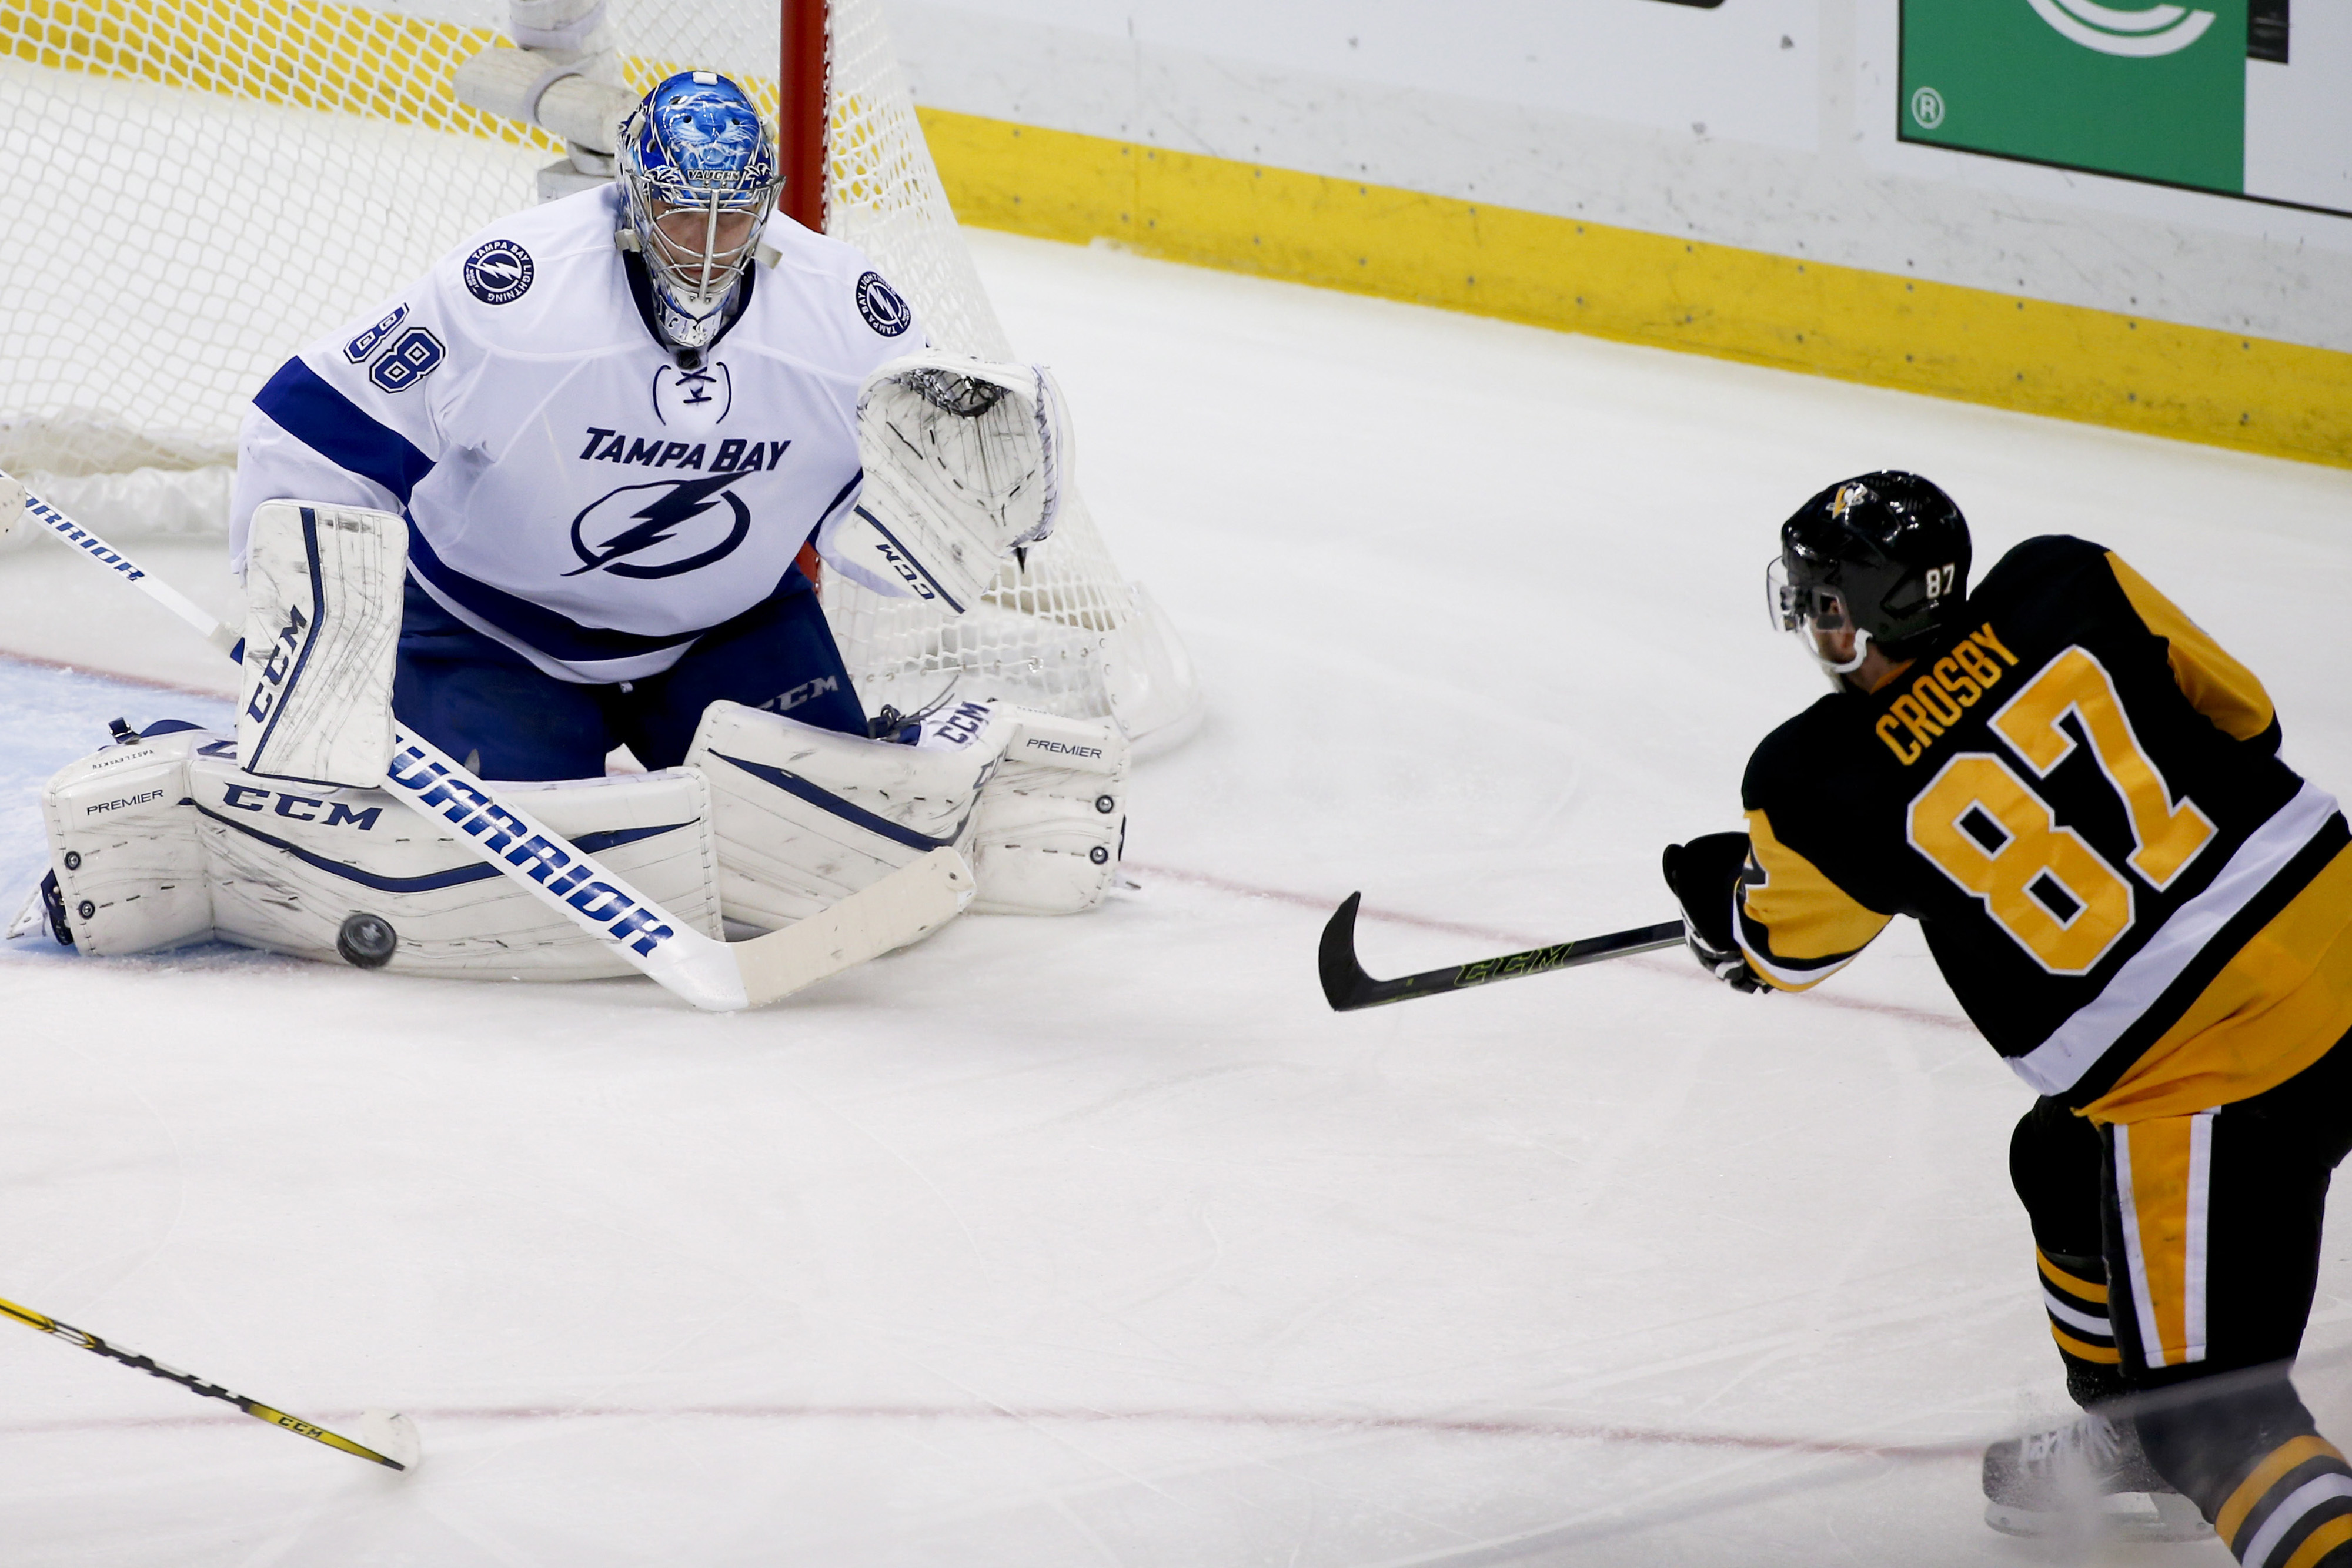 Tampa Bay Lightning goalie Andrei Vasilevskiy, left, makes a save on Pittsburgh Penguins' Sidney Crosby (87) during the third period of Game 2 of the NHL hockey Stanley Cup Eastern Conference finals, Monday, May 16, 2016, in Pittsburgh. (AP Photo/Gene J.